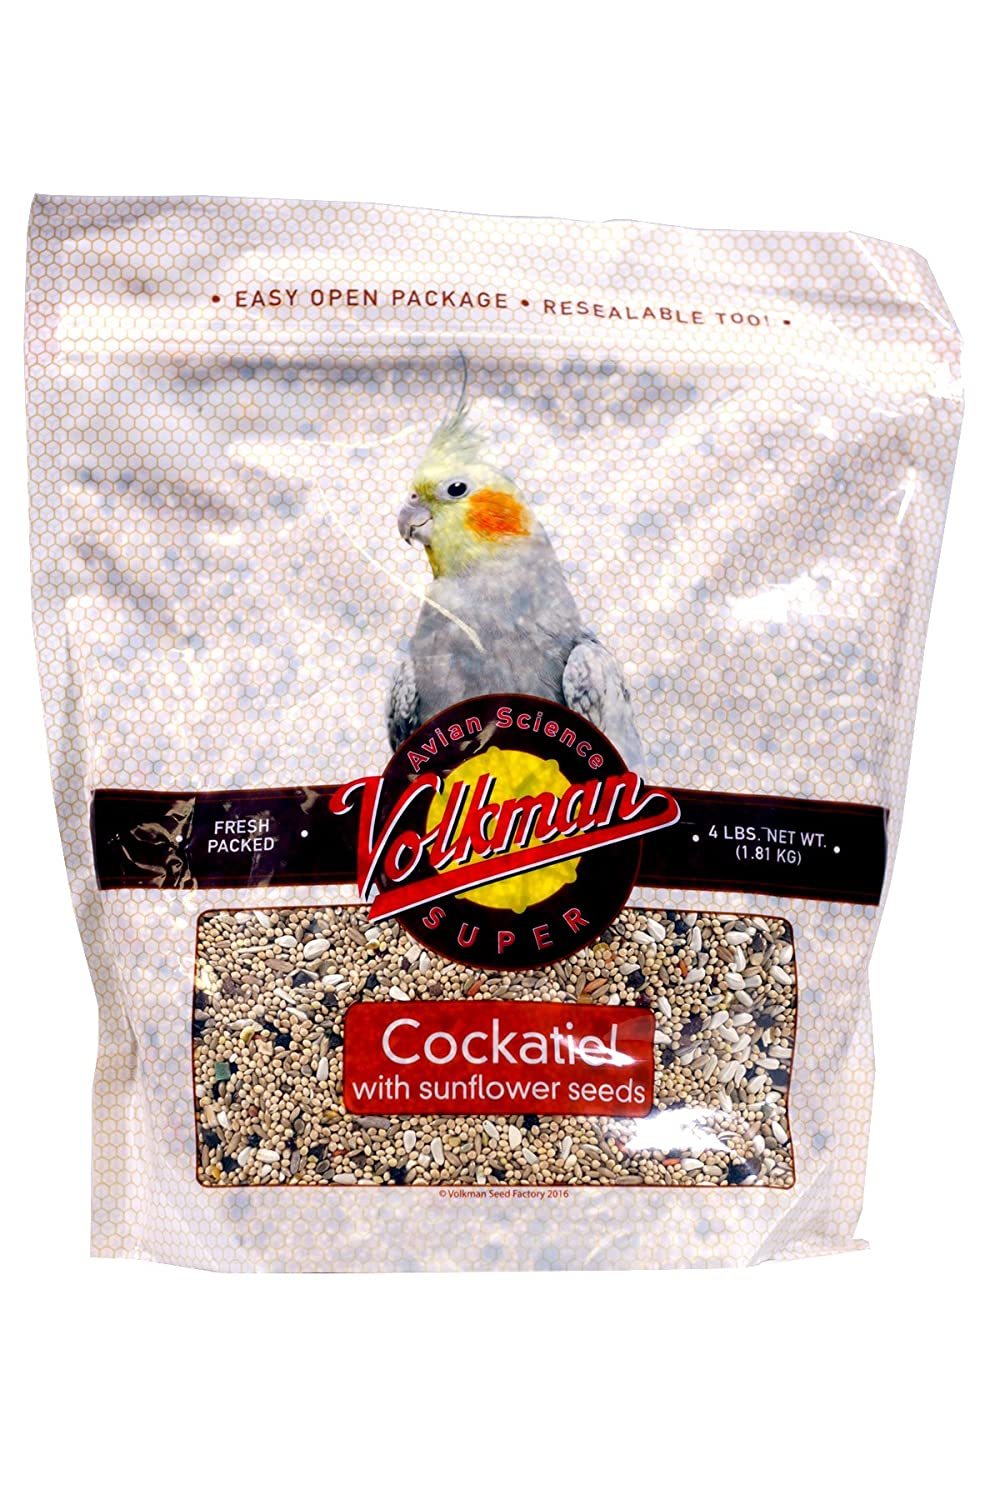 Volkman Cockatiel with Sunflower Seed Mix 4lb